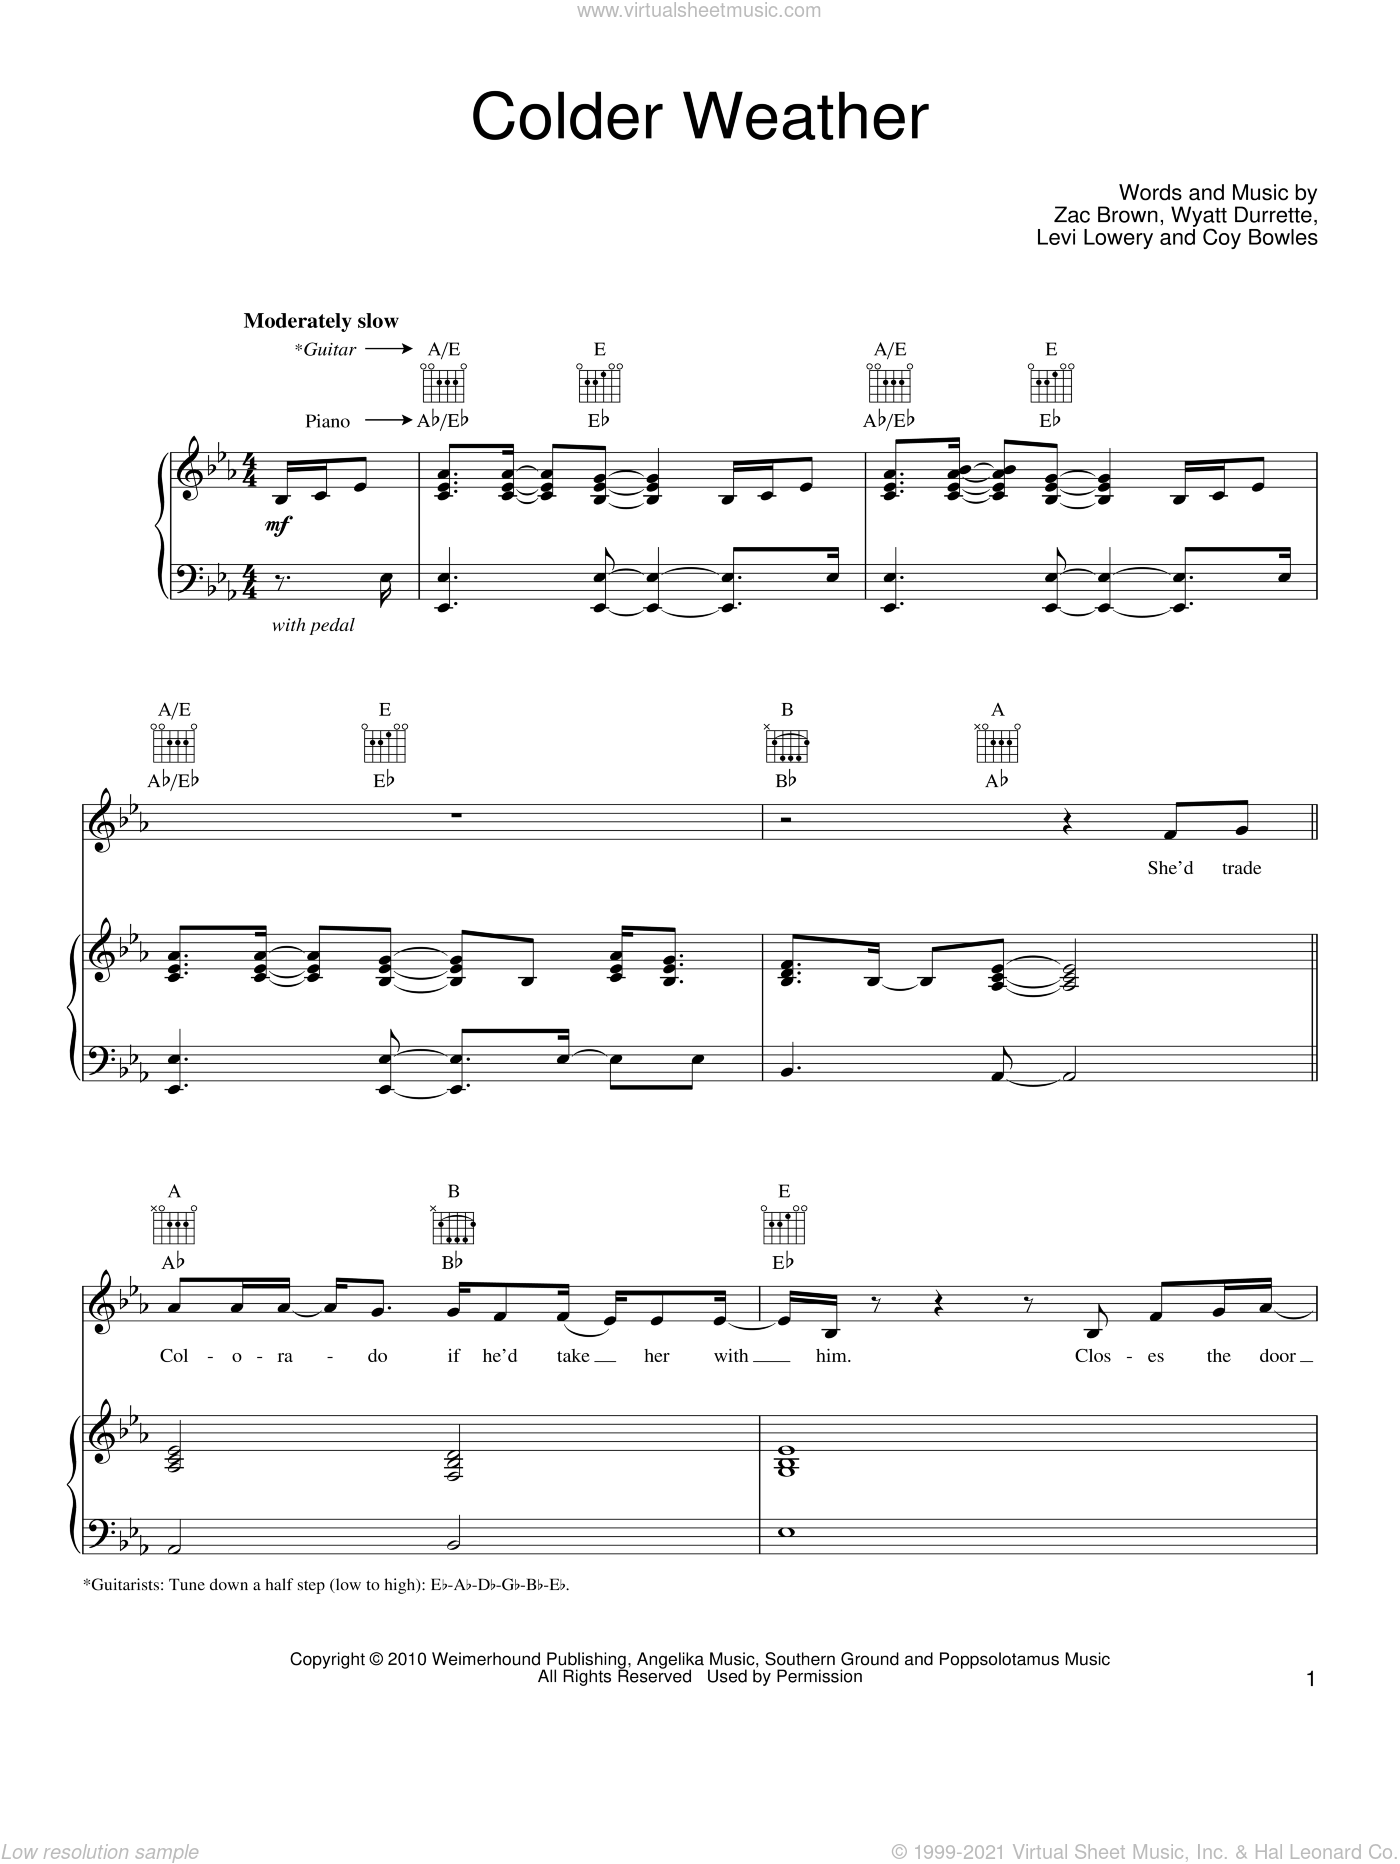 Colder Weather sheet music for voice, piano or guitar by Zac Brown